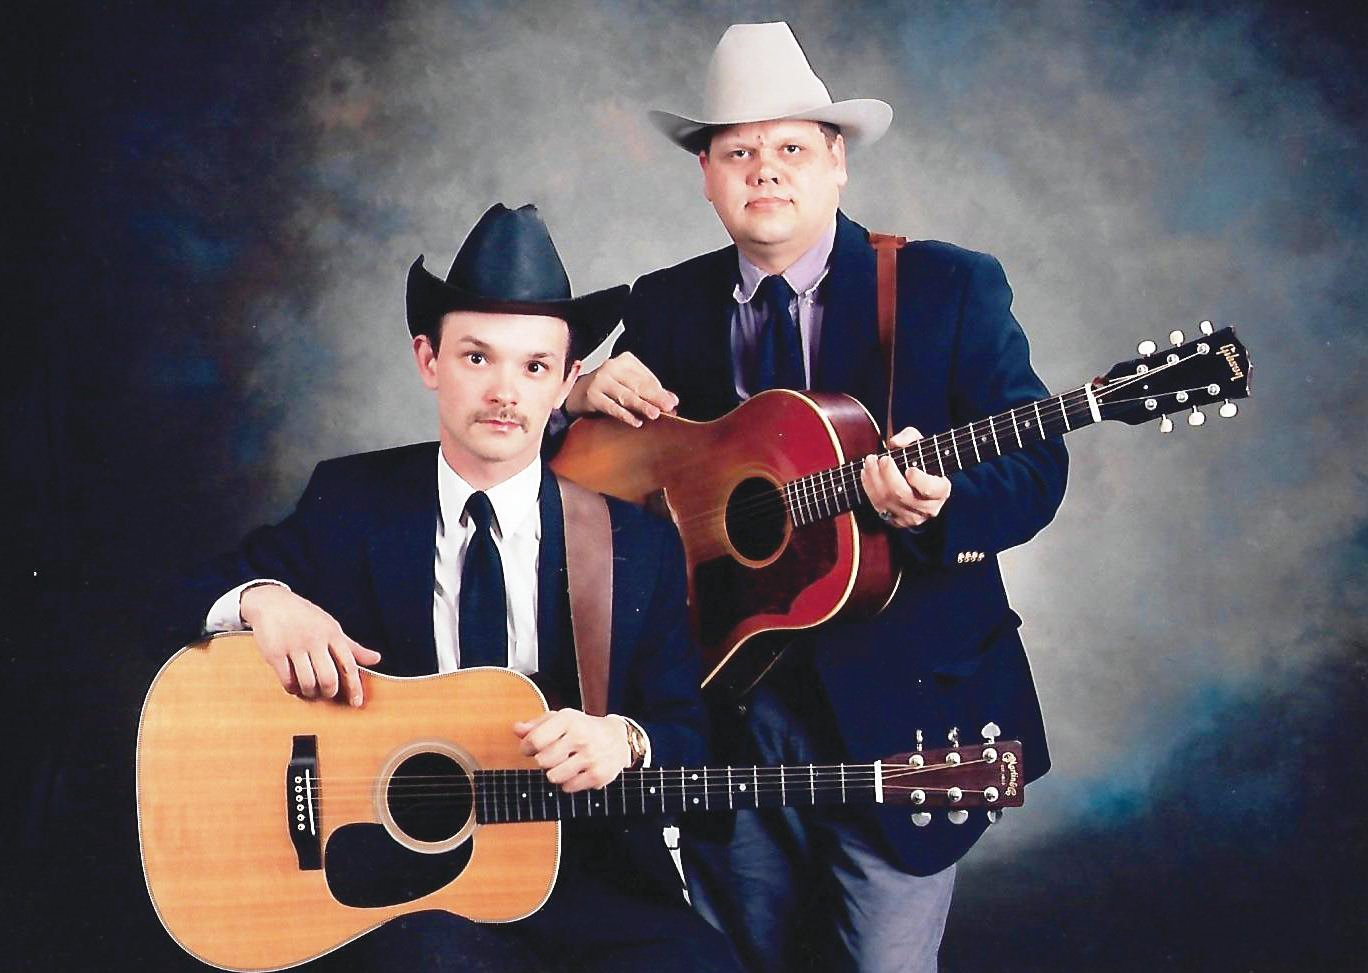 Original Formula, a bluegrass band comprised of Al Elliot of Lexington and Rob Perkins of Asheboro, will perform traditional and original tunes at the Oasis Fresh Market and Deli Nov. 3 and 17.